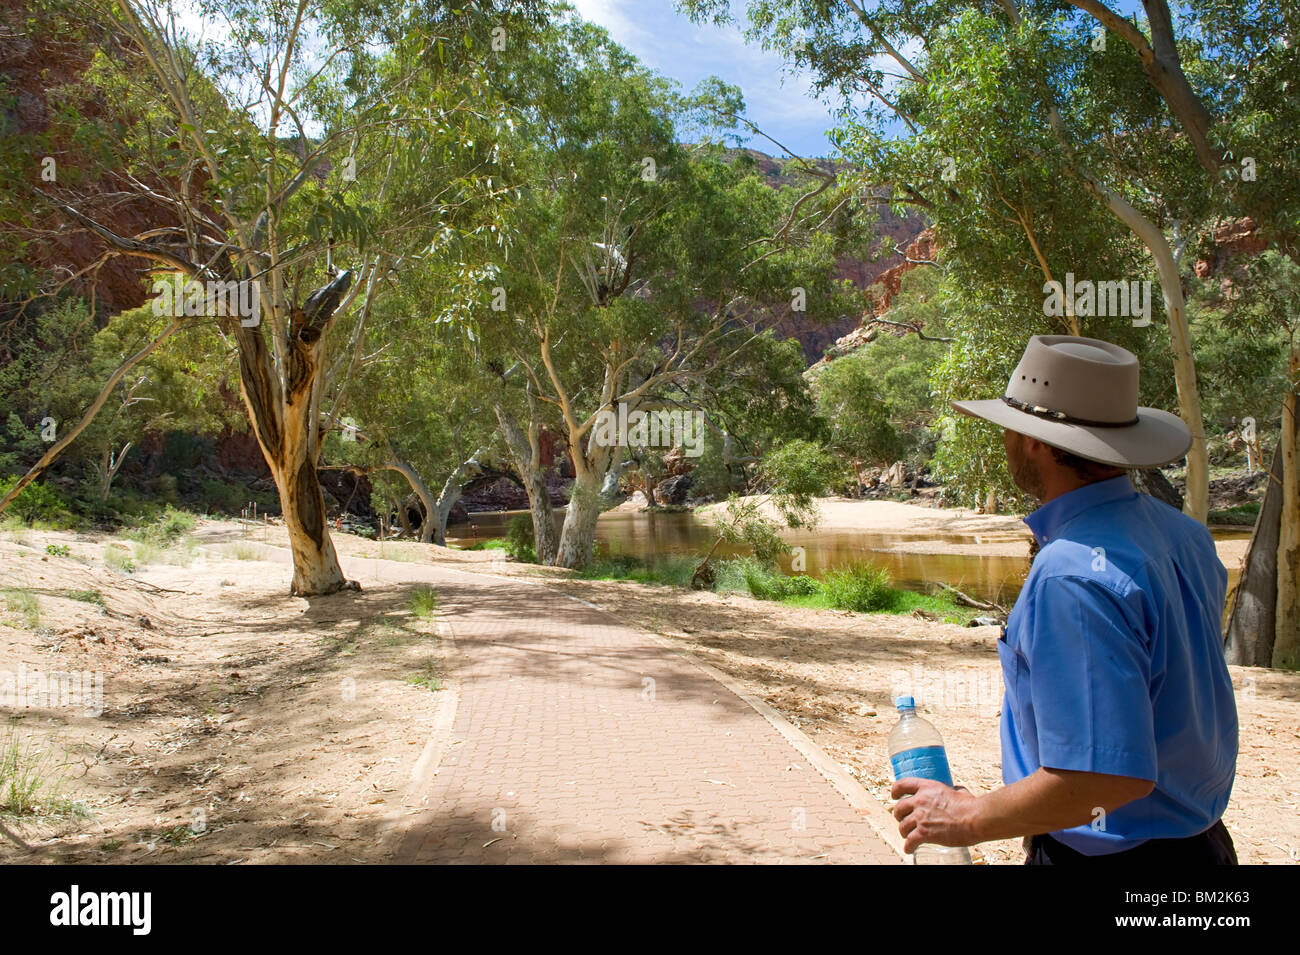 An Australian man with typical hat walking to Ormiston Gorge in the Western MacDonnell Ranges, Northern Territory, - Stock Image